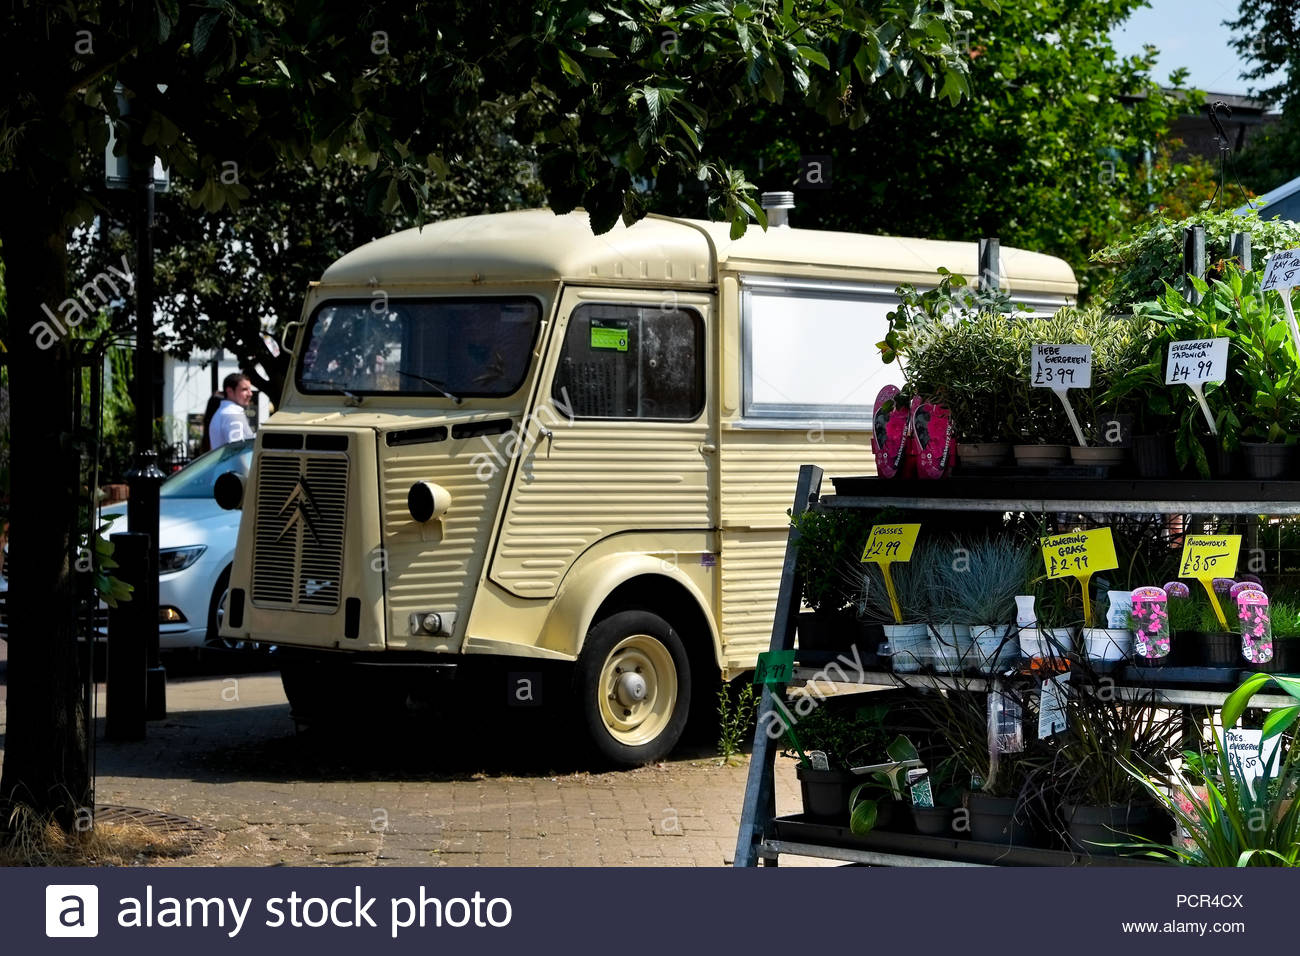 Old Citroen Van And Flowers Plants For Sale Lincoln Uk Stock Photo